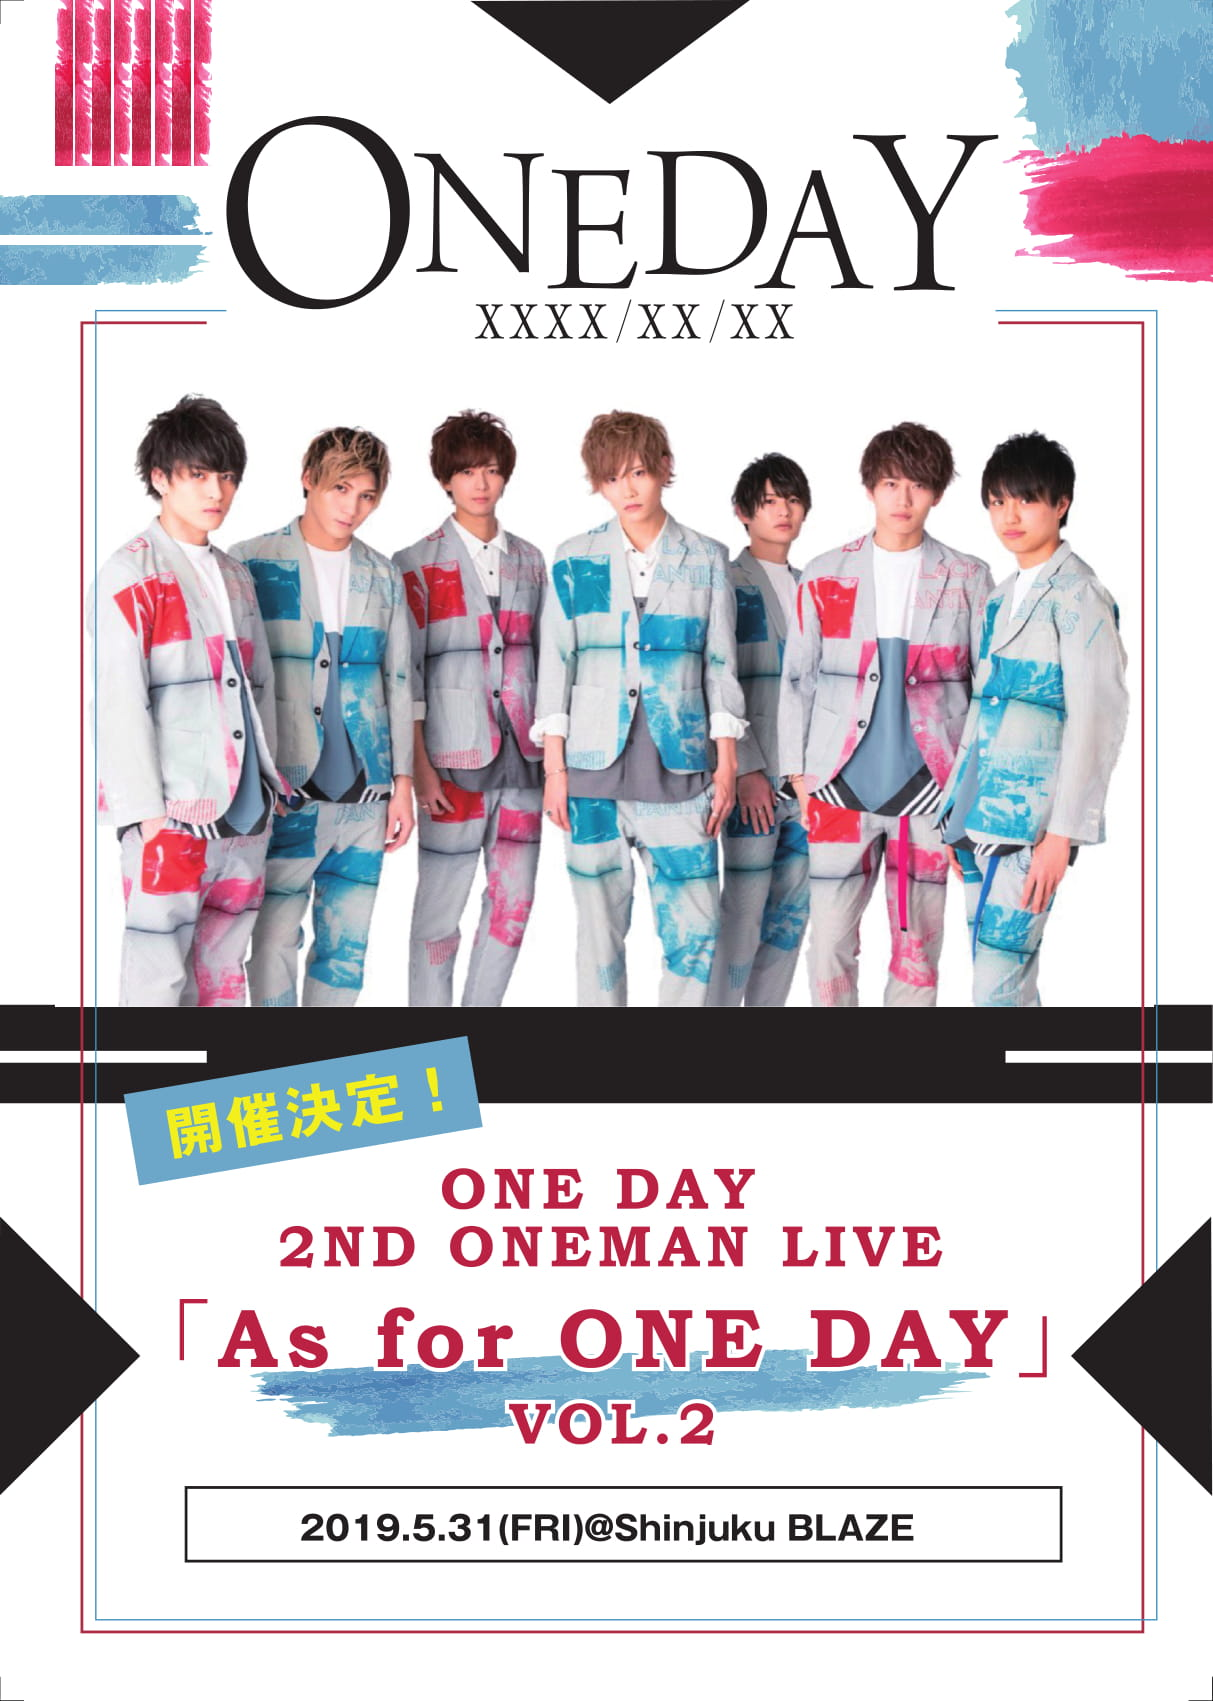 ONE DAY 2ND ONEMAN LIVE 'AS FOR ONE DAY' vol.2